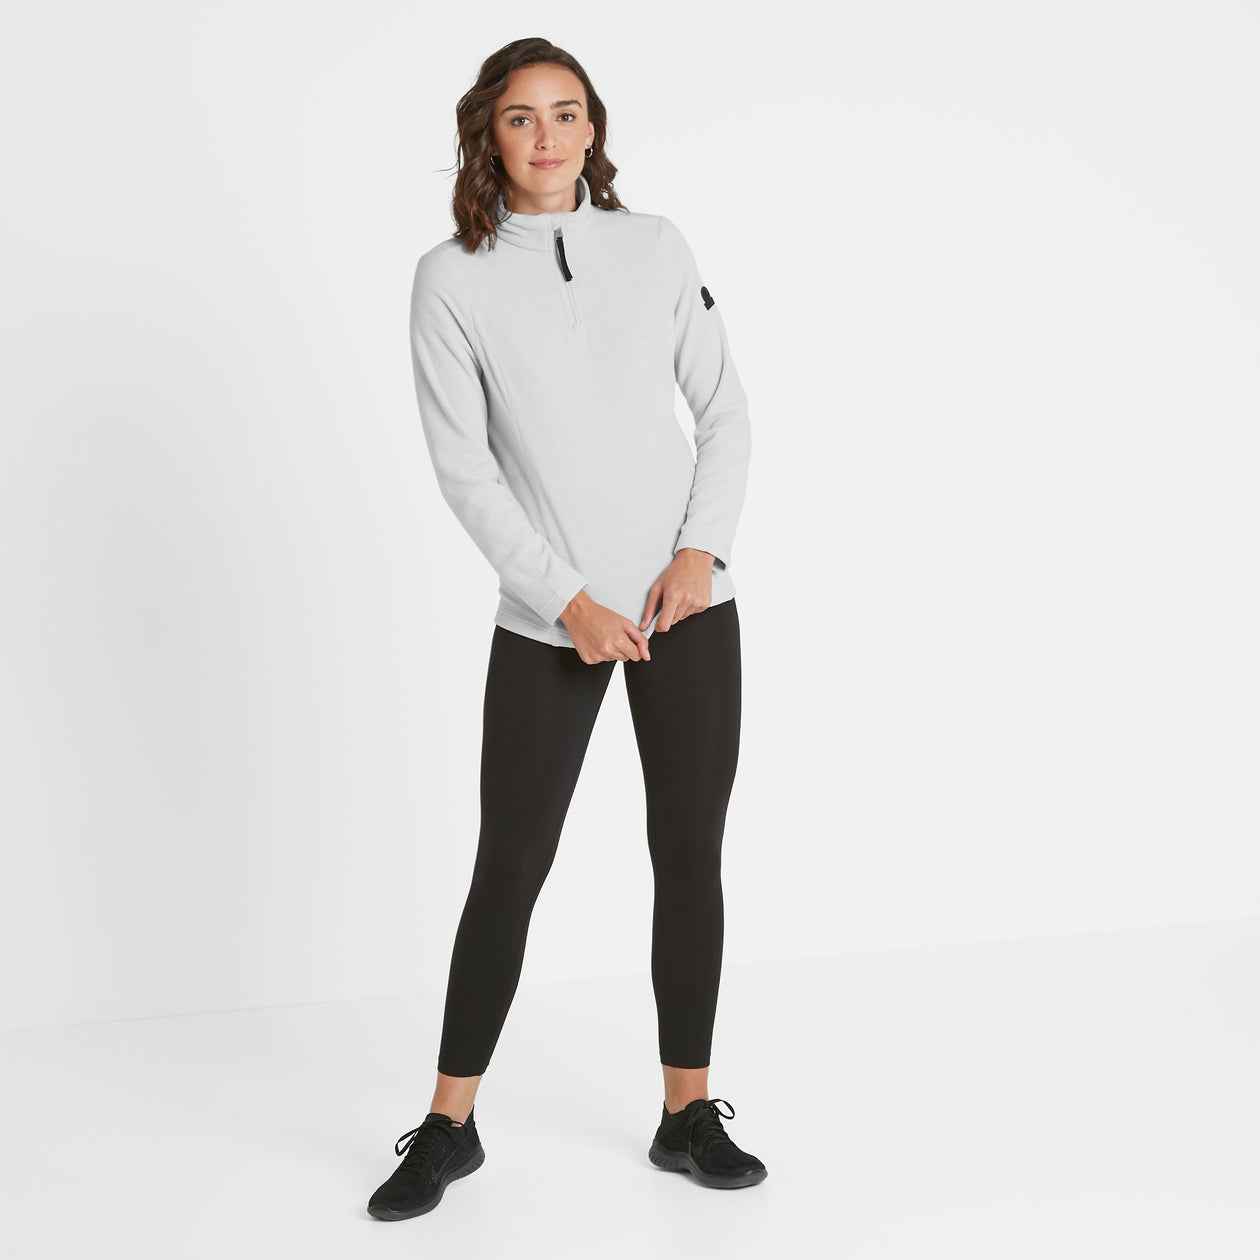 Shire Womens Fleece Zipneck - Ice Grey image 4